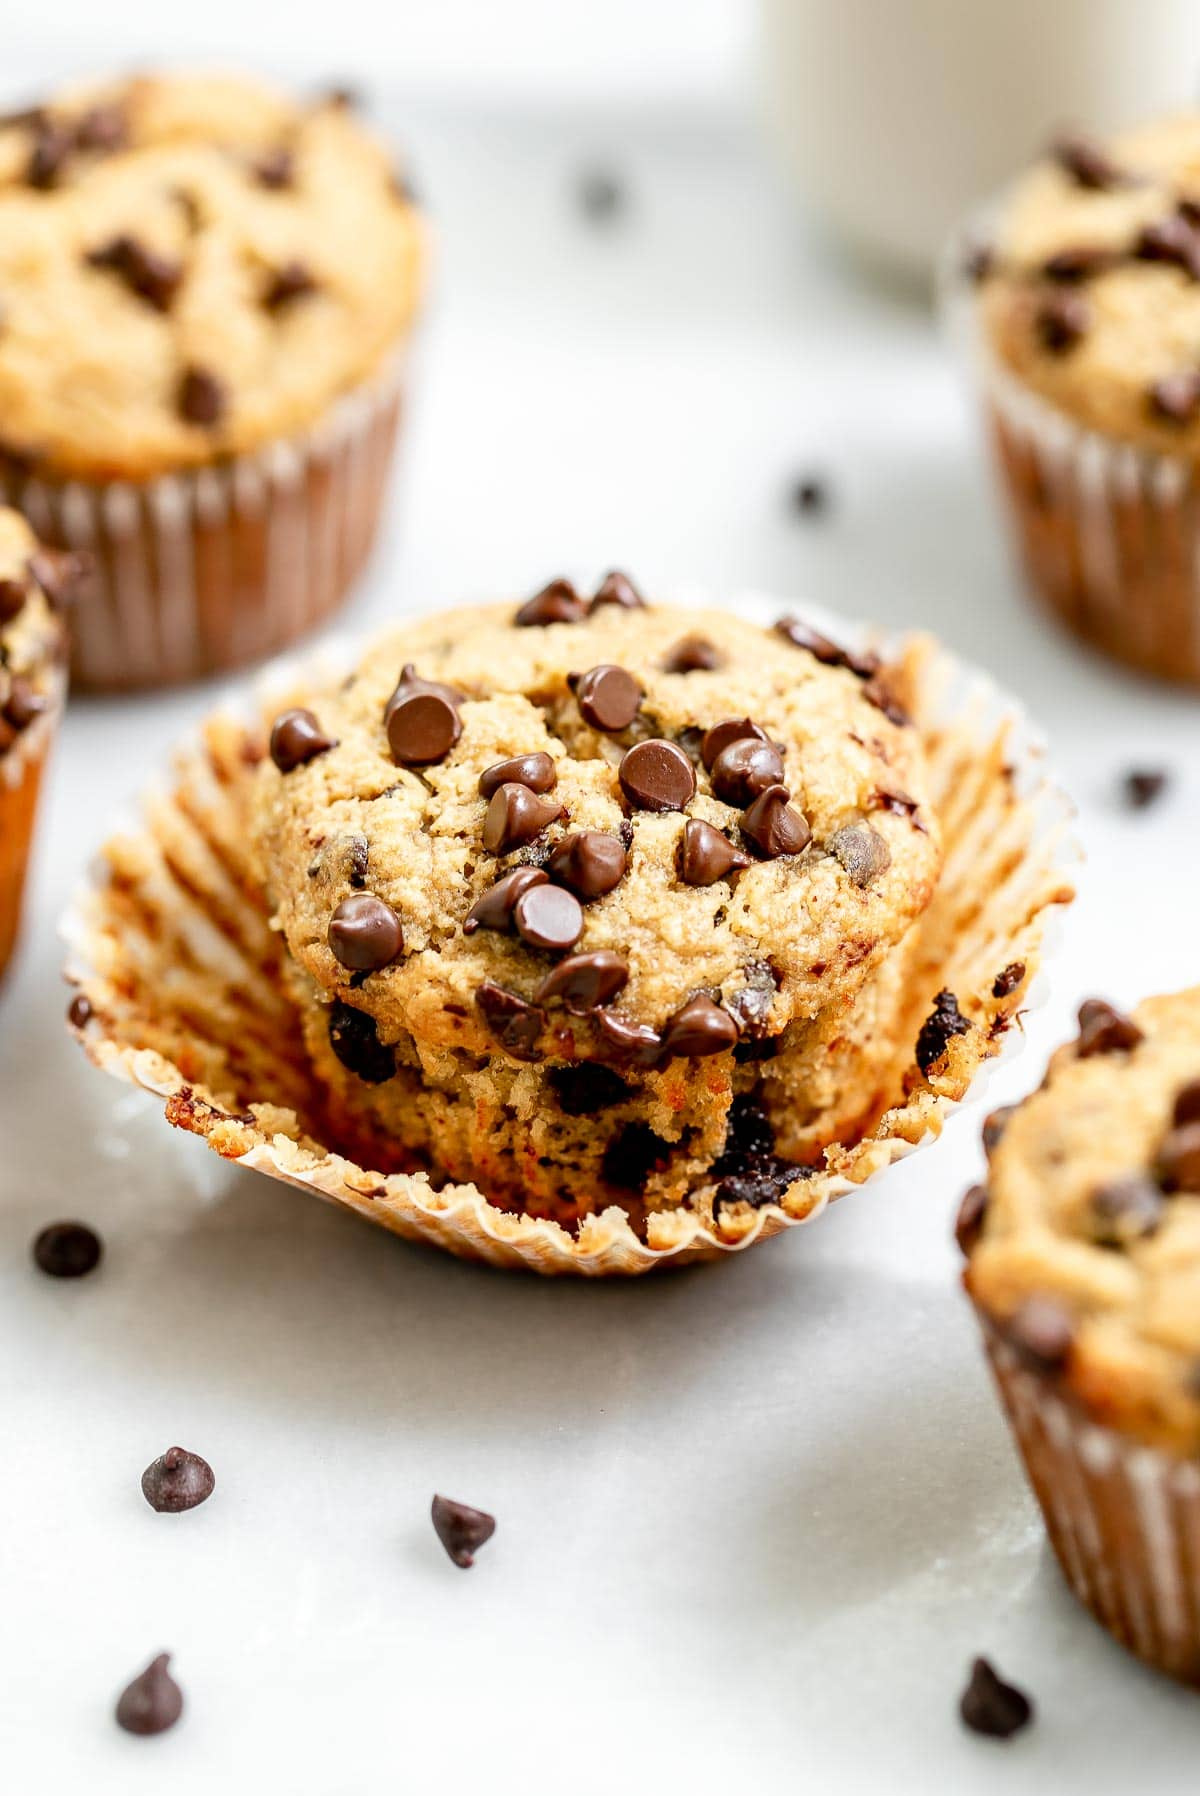 Easy almond flour recipe with banana and chocolate chips.